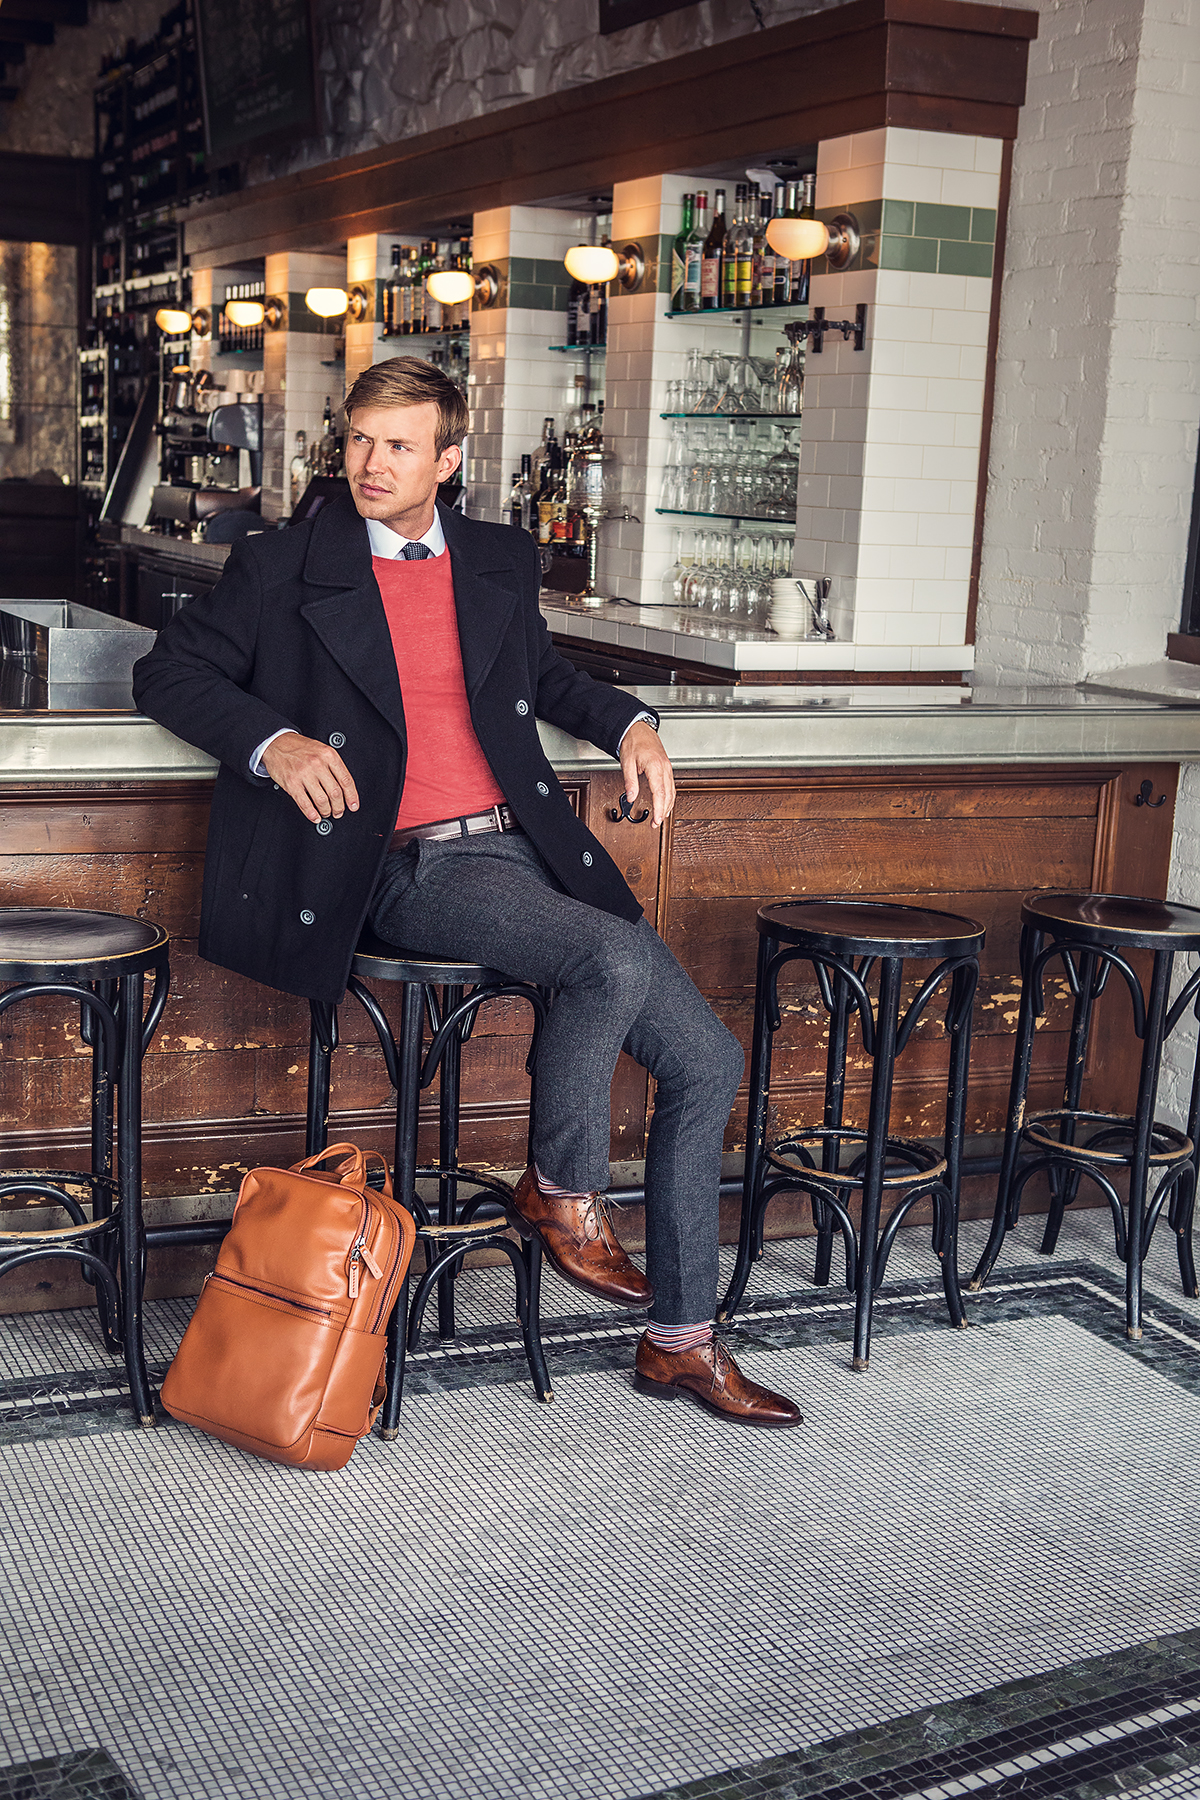 MC_2018-FW_Lifestyle_Brice-Brown-Shoe_BackOffice-Tan-Bag1_Sm.jpg